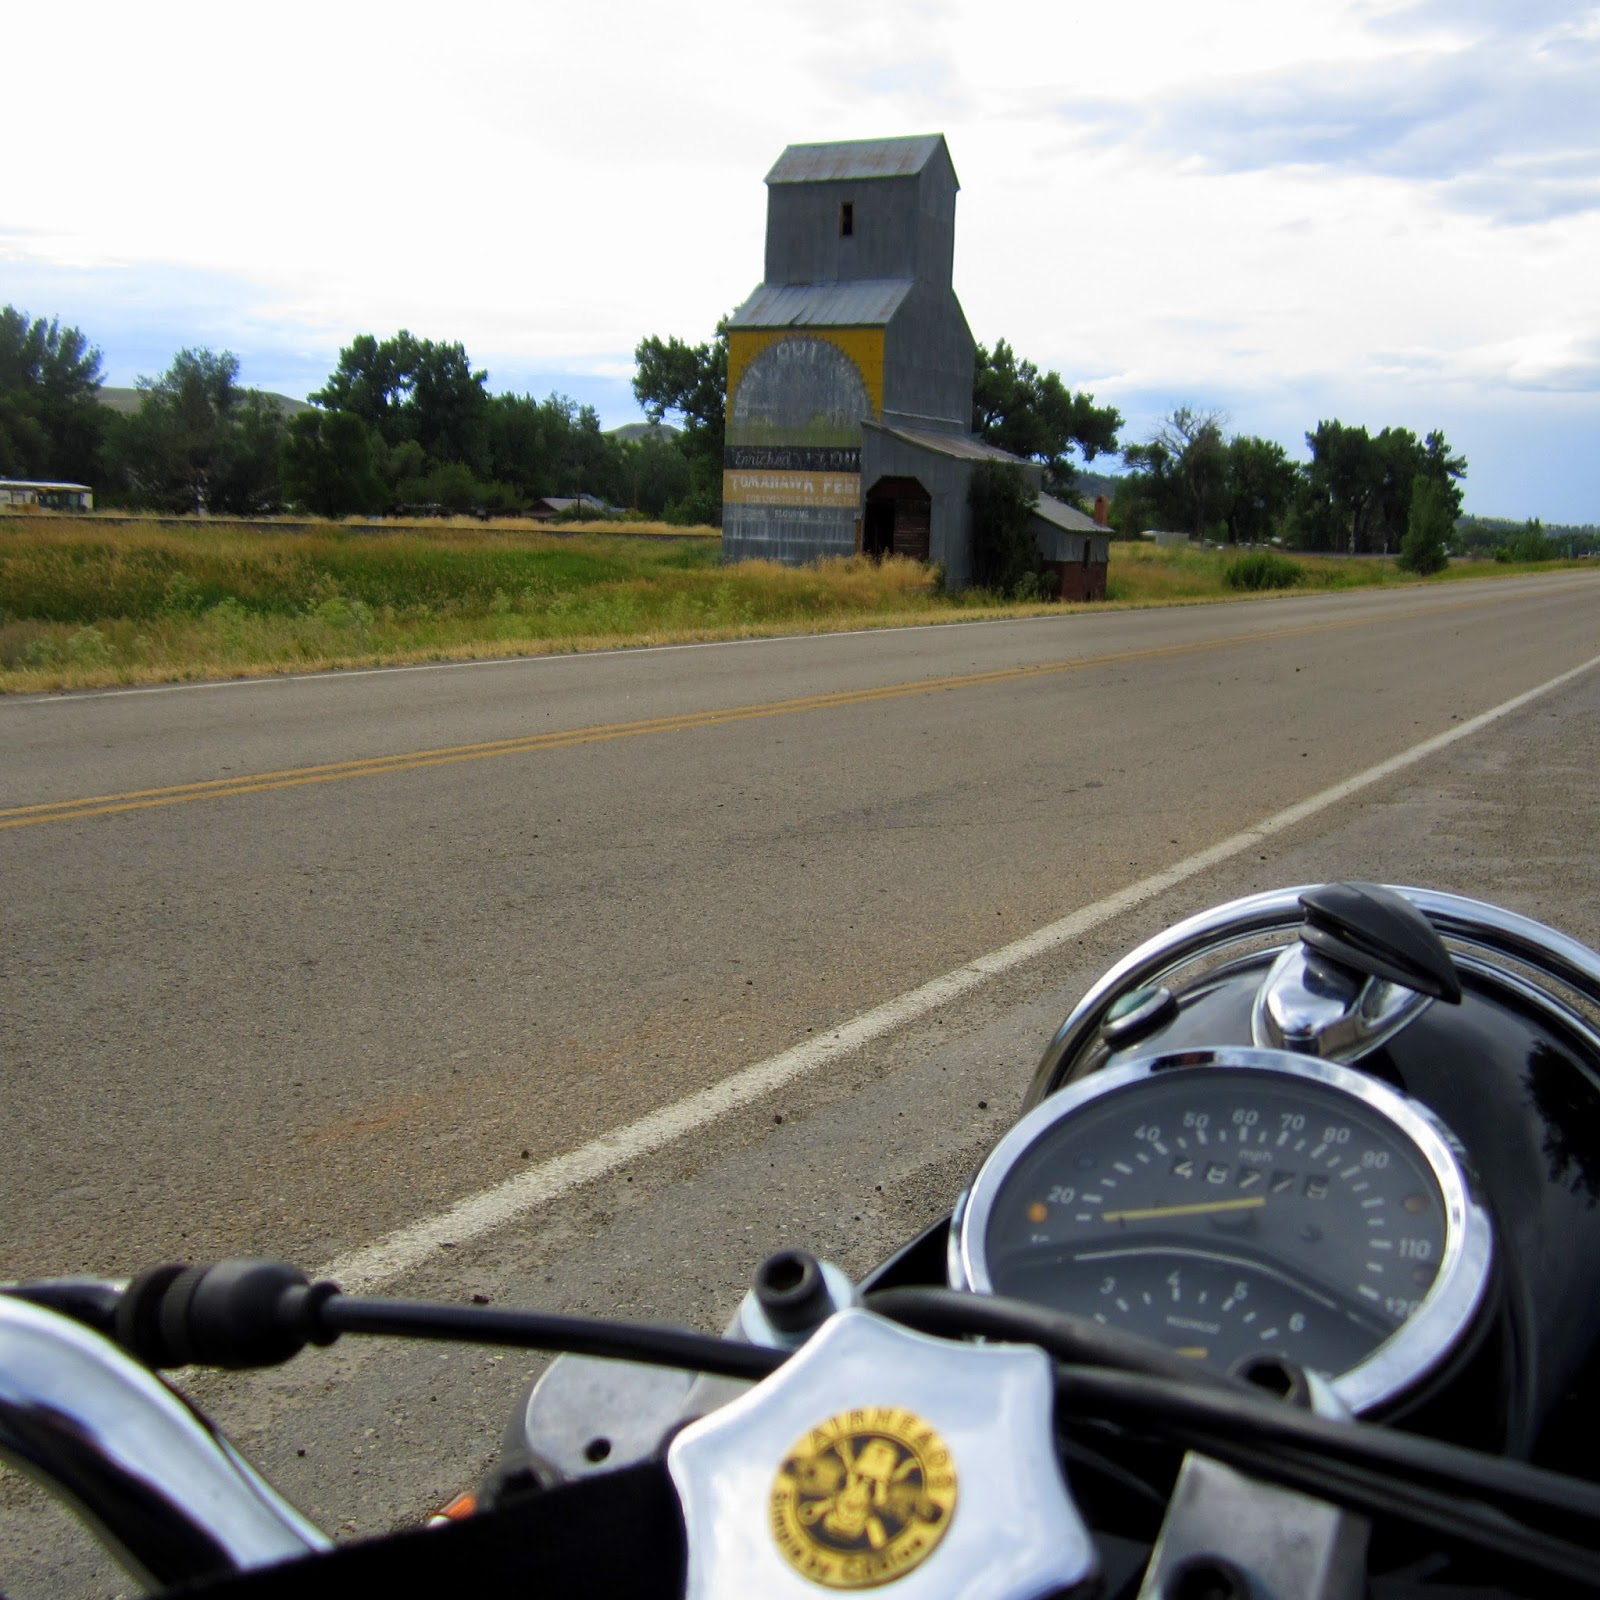 Montana big horn county wyola - Old Grain Elevator In Wyola Montana I Worked At A Sister Elevator In Hardin Mt When I Was 15 Years Old Came Up To This One Once To Work A Day Now